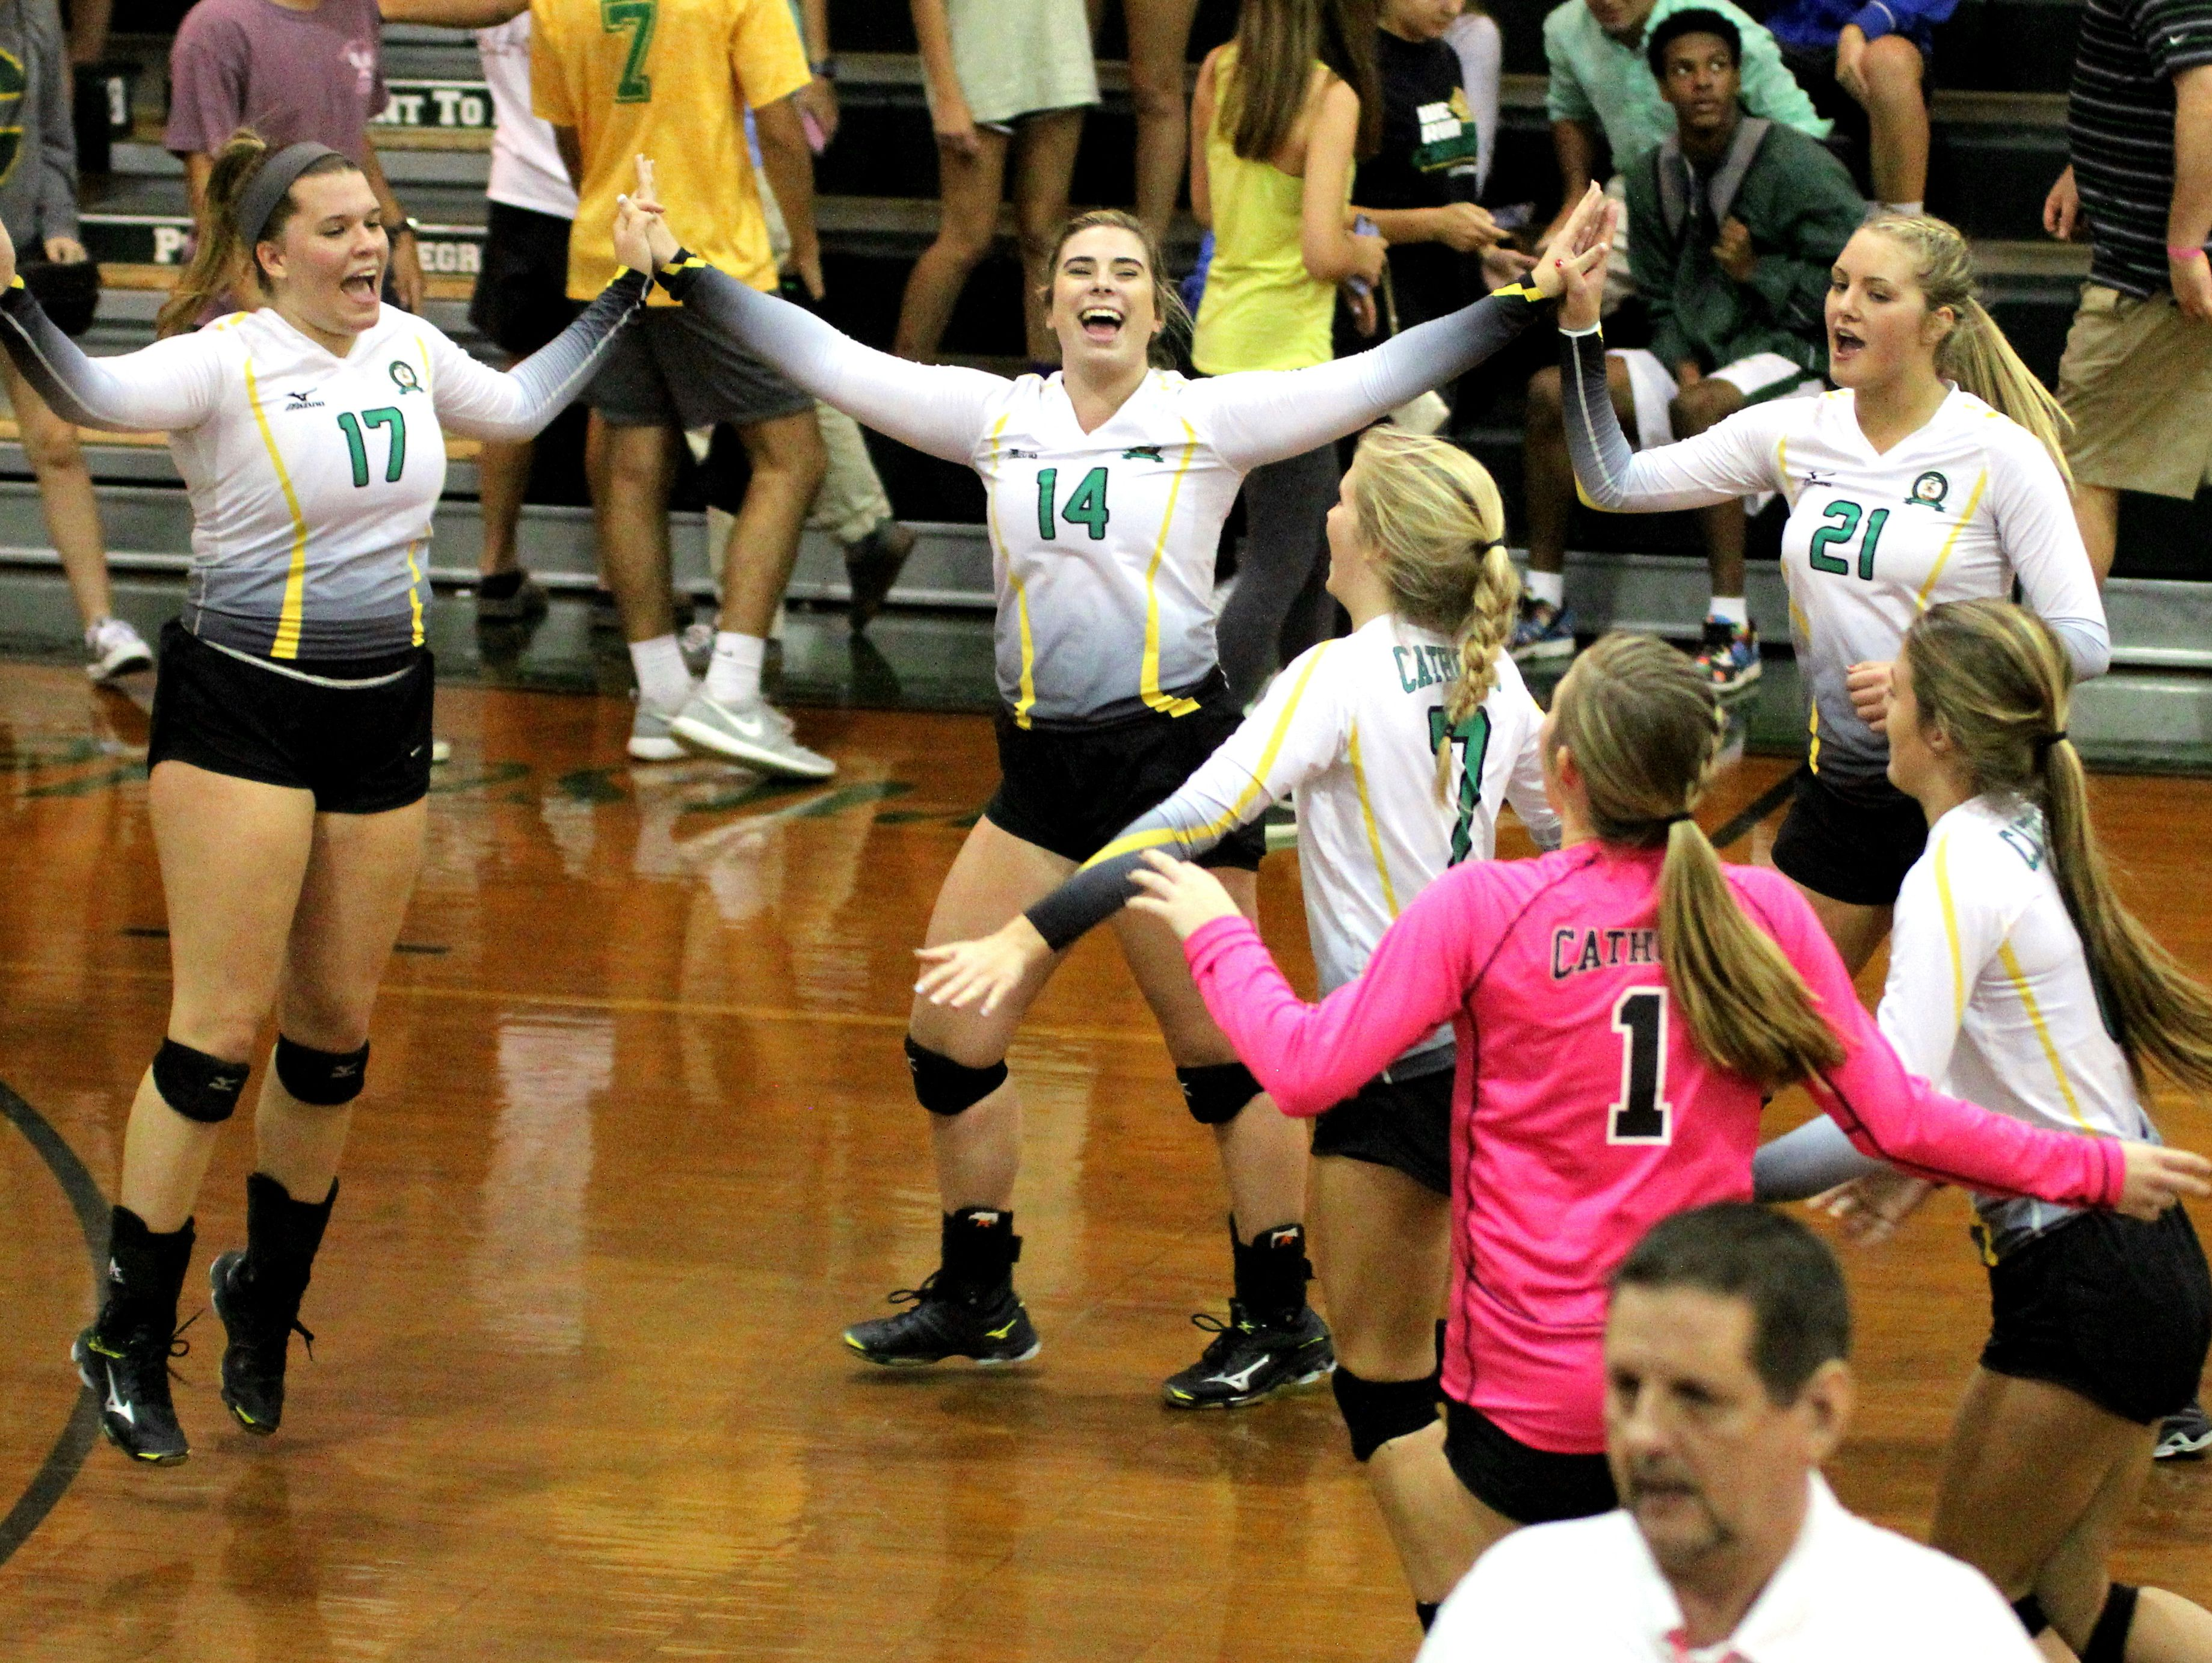 Catholic High players celebrate after the team pulls off the Region 1-5A win over Marianna on Tuesday.